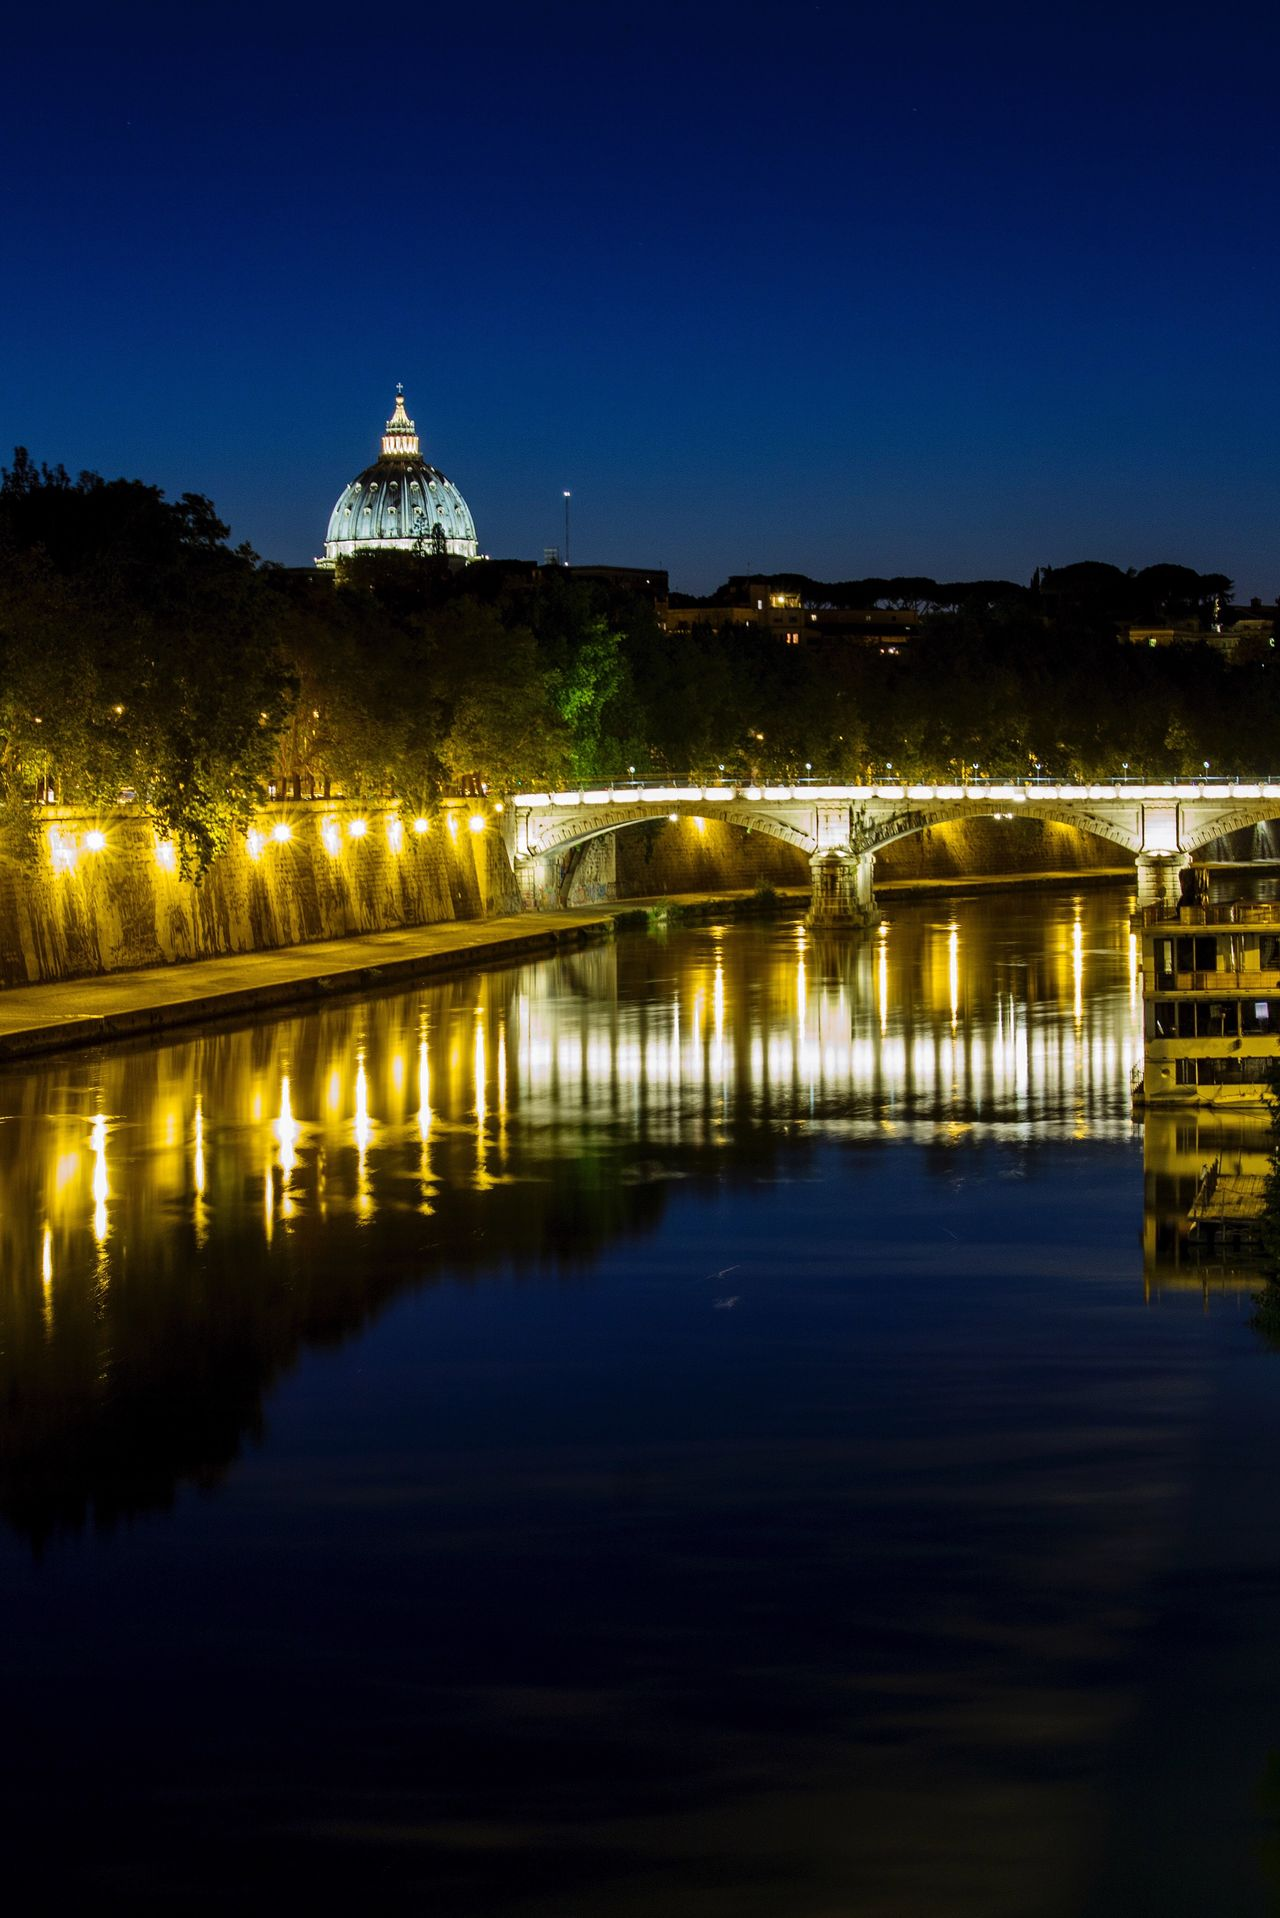 Architecture Built Structure Illuminated Night Building Exterior Reflection Water Travel Destinations Place Of Worship Religion Waterfront Dome Spirituality Clear Sky No People Outdoors Sky Nature SanPietro Rome Place Of Heart